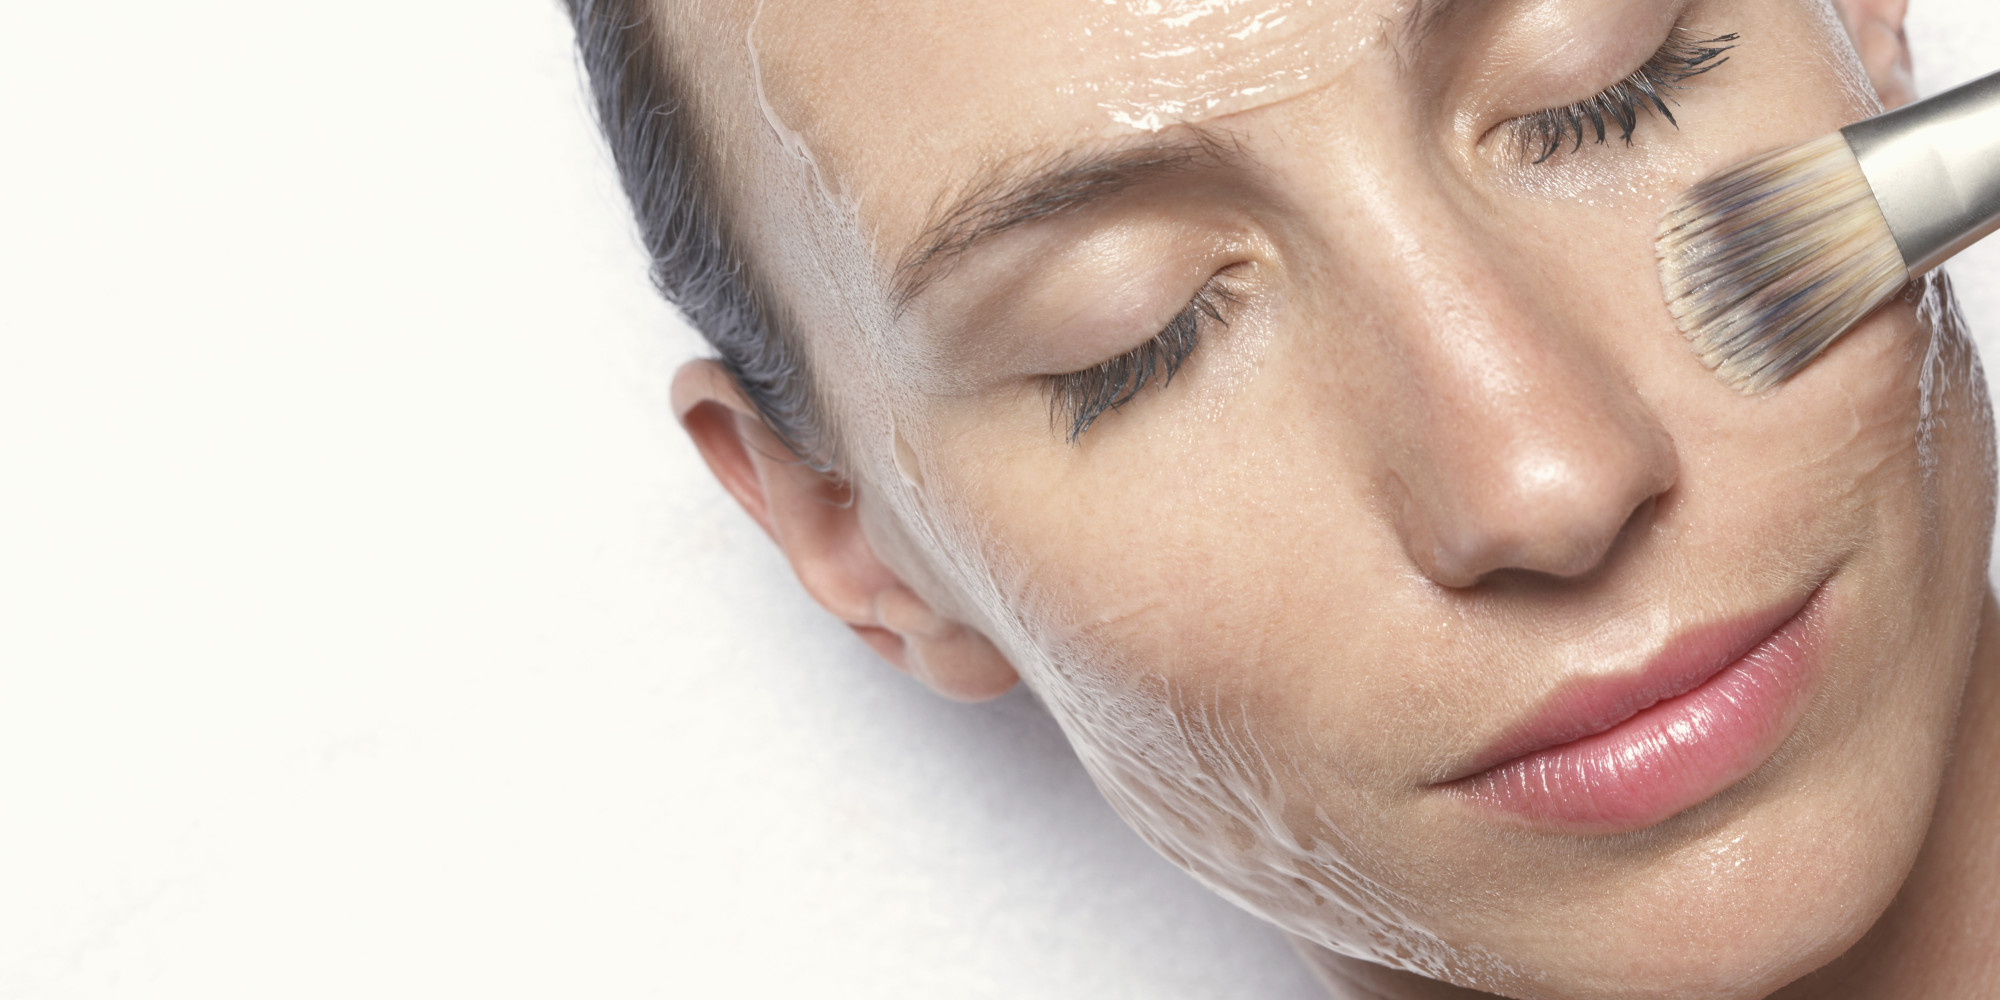 How to rejuvenate your face with peeling